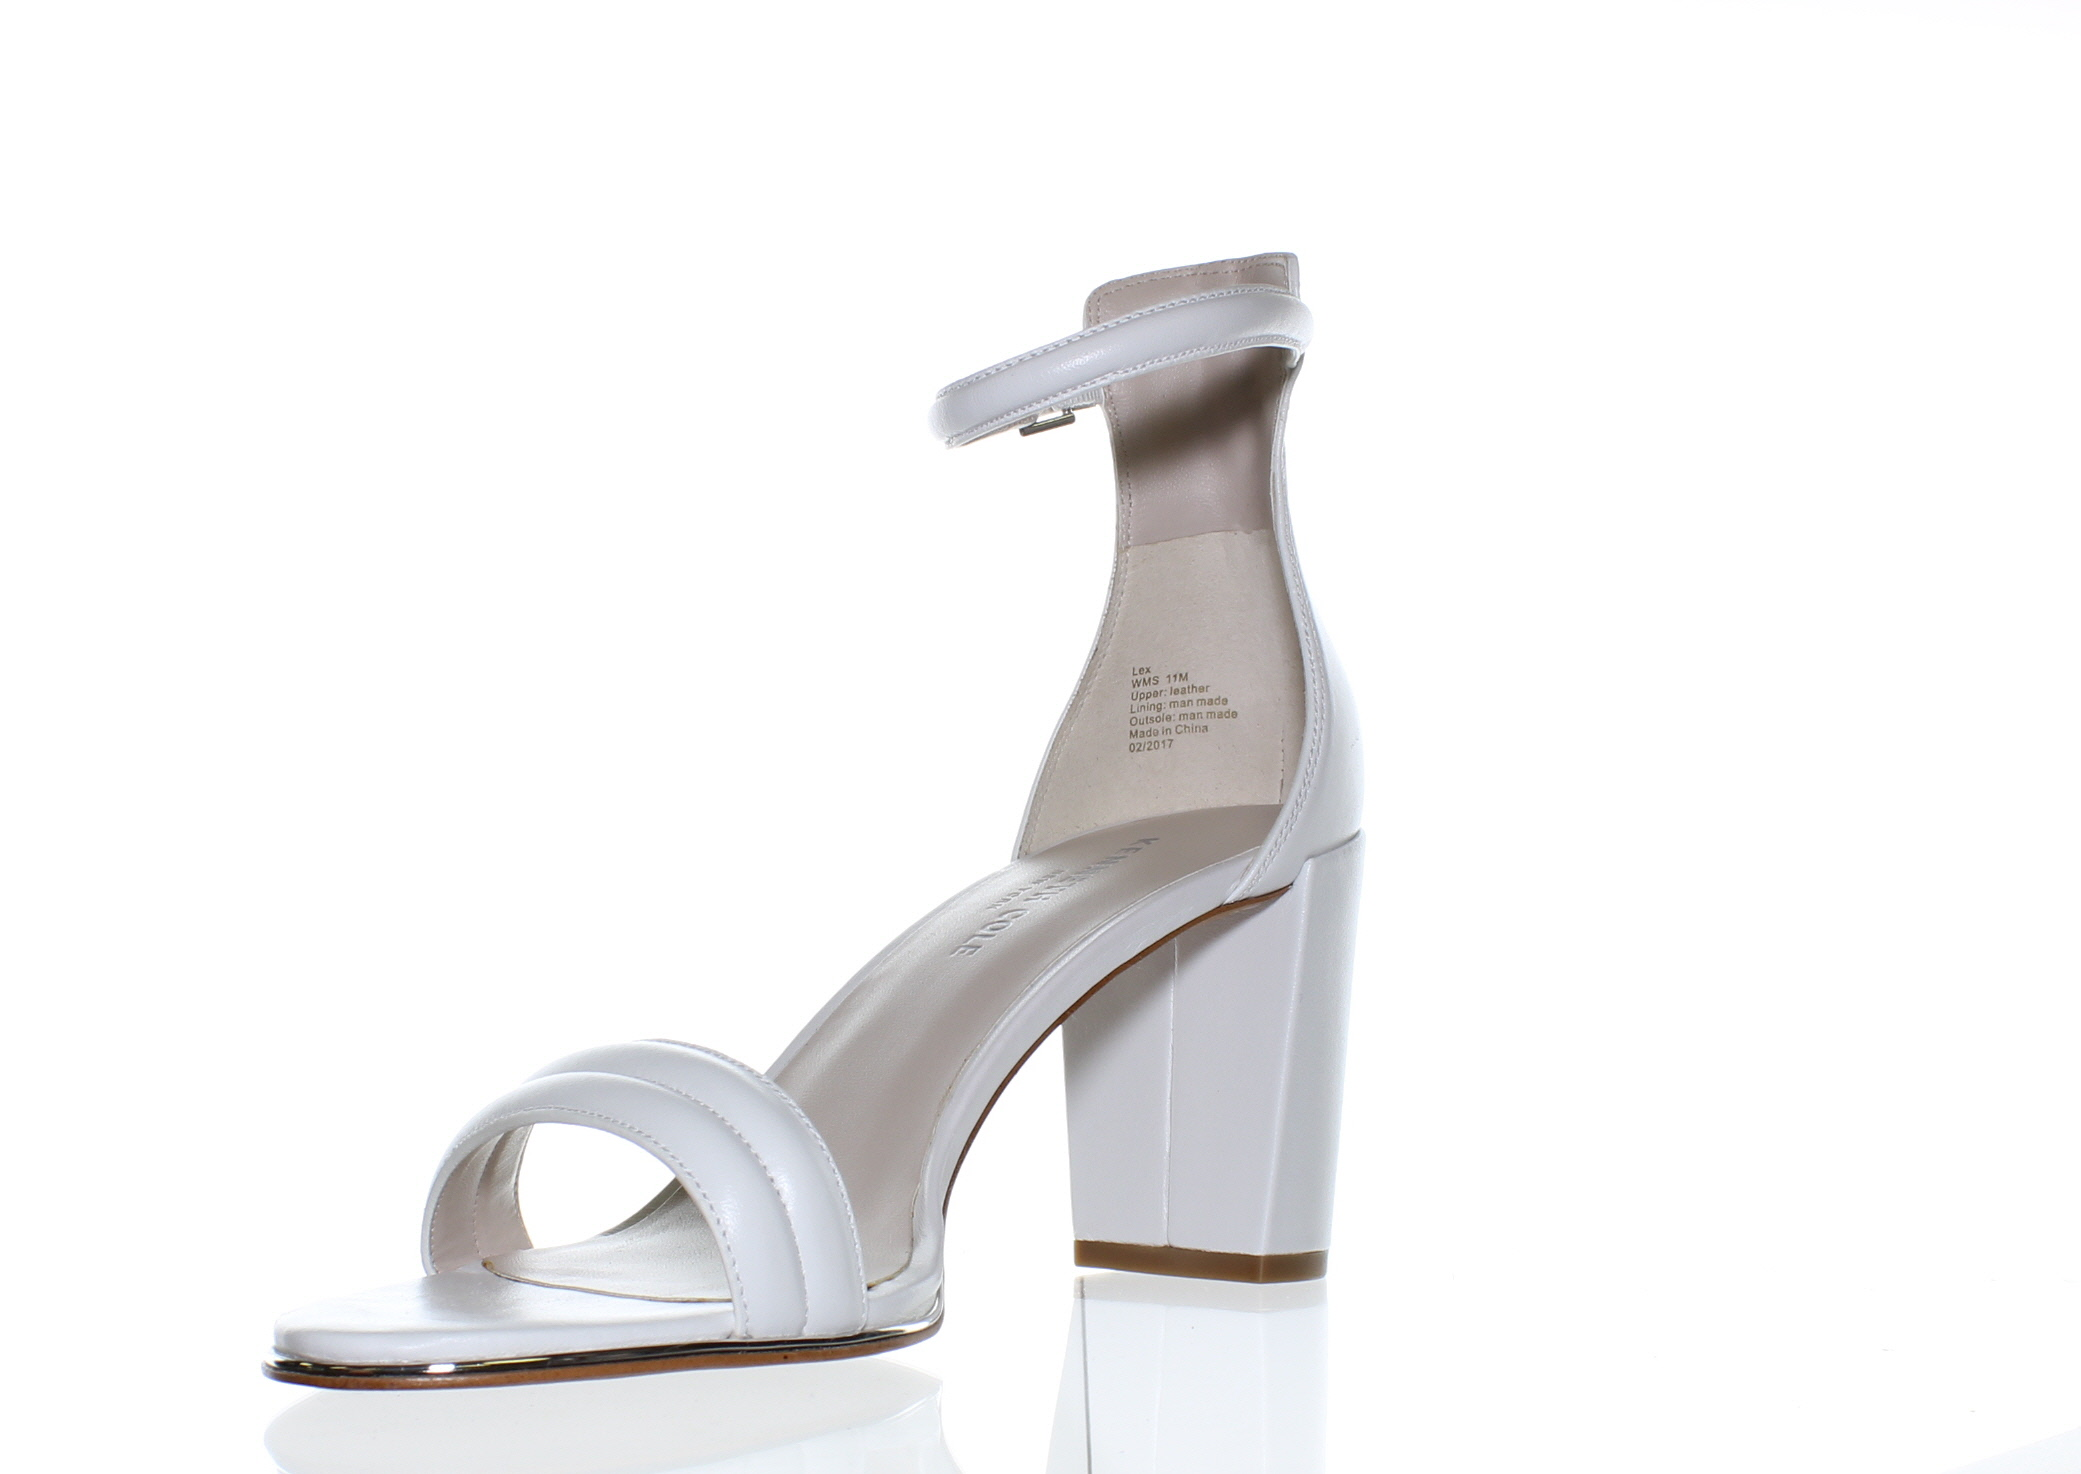 a37236001c8 Kenneth Cole Womens Kl05494le White Ankle Strap Heels Size 11 (1867 ...